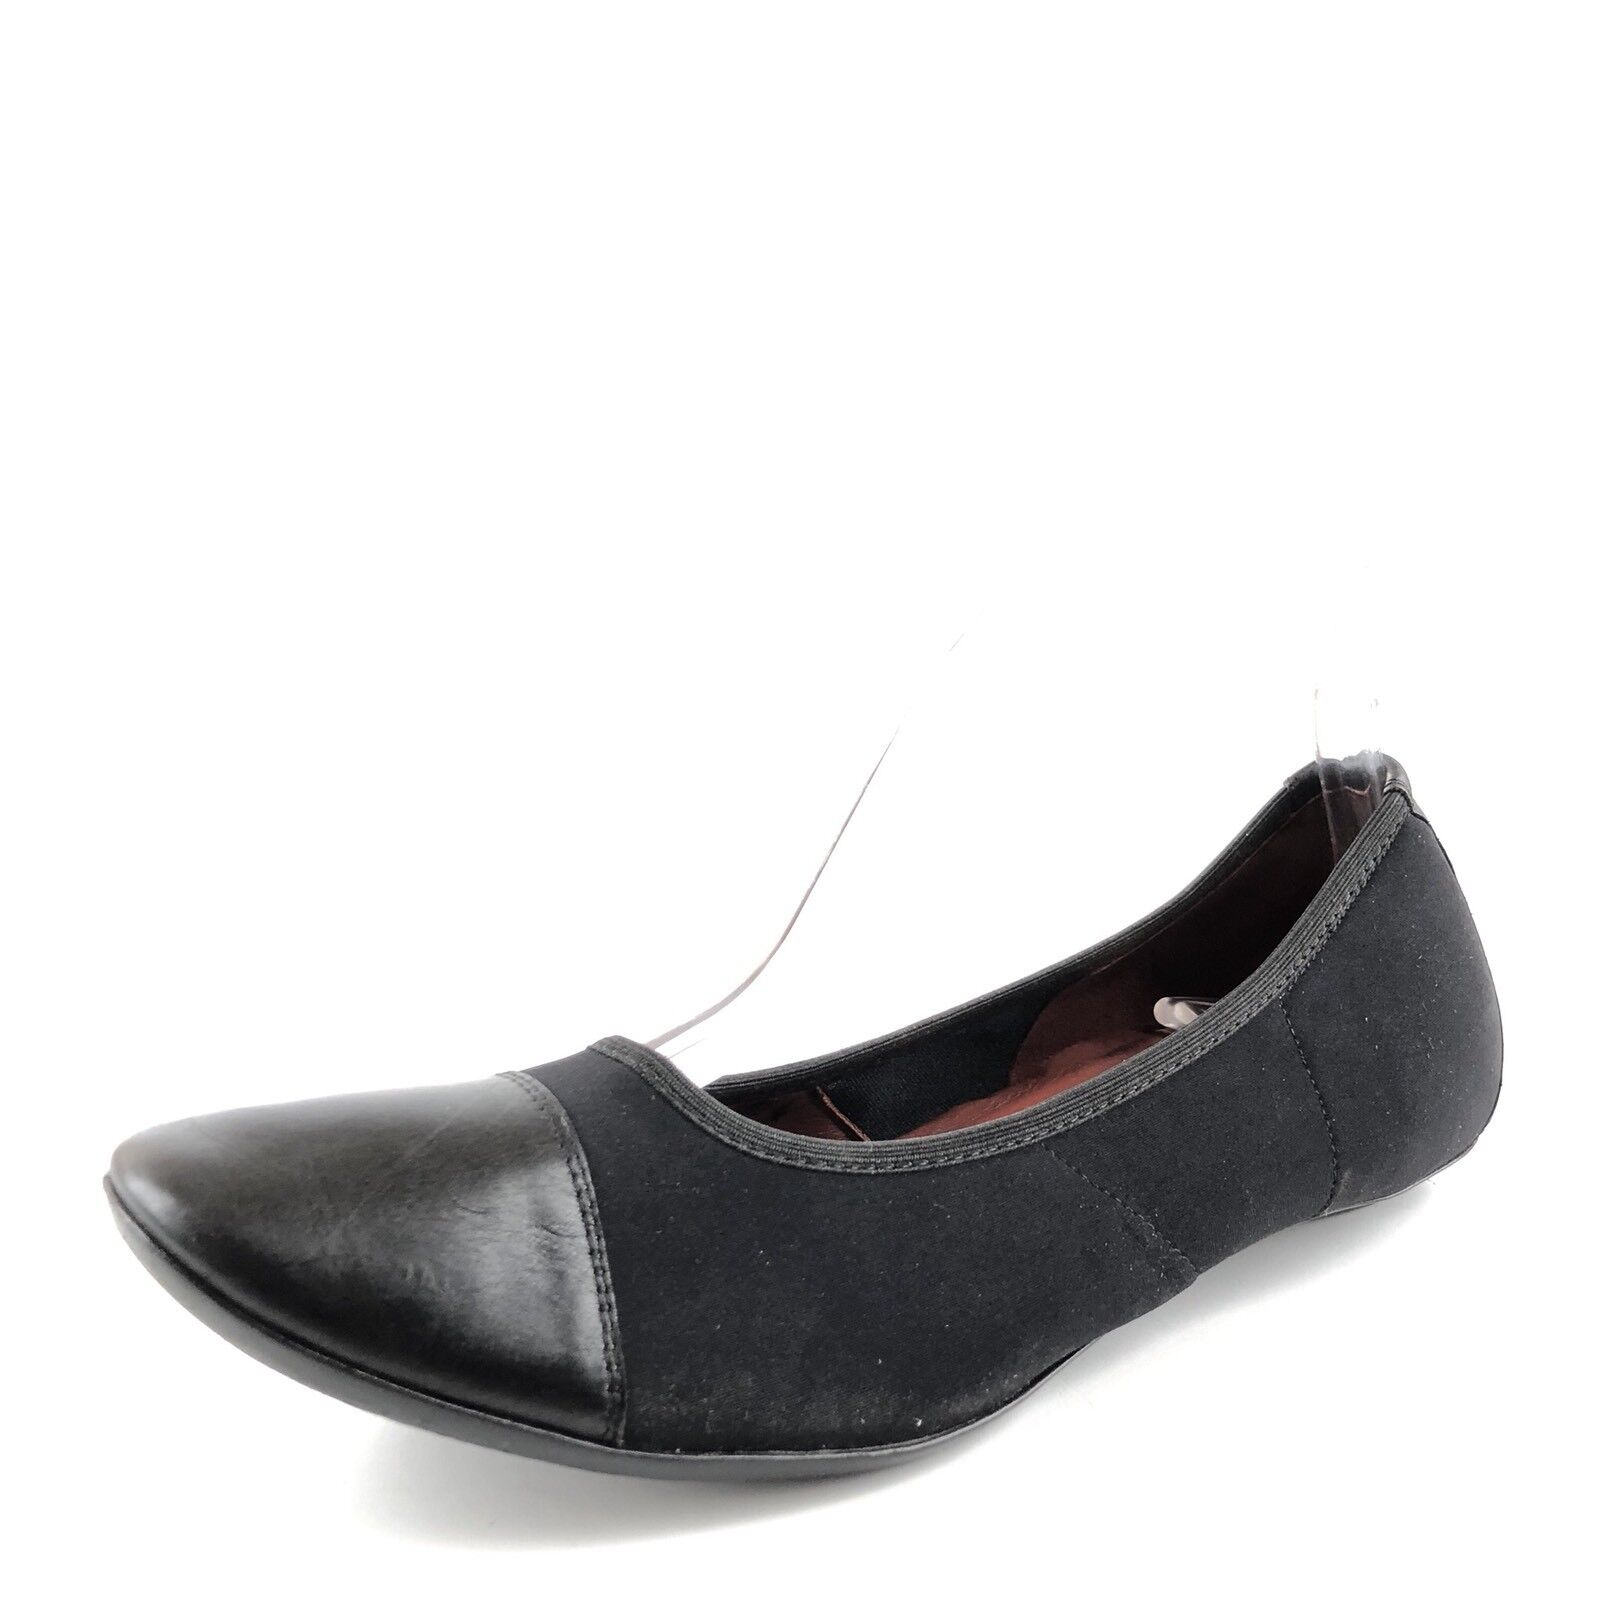 Donald J Pliner Halo Black Leather Stretch Flats Womens Size 7 M